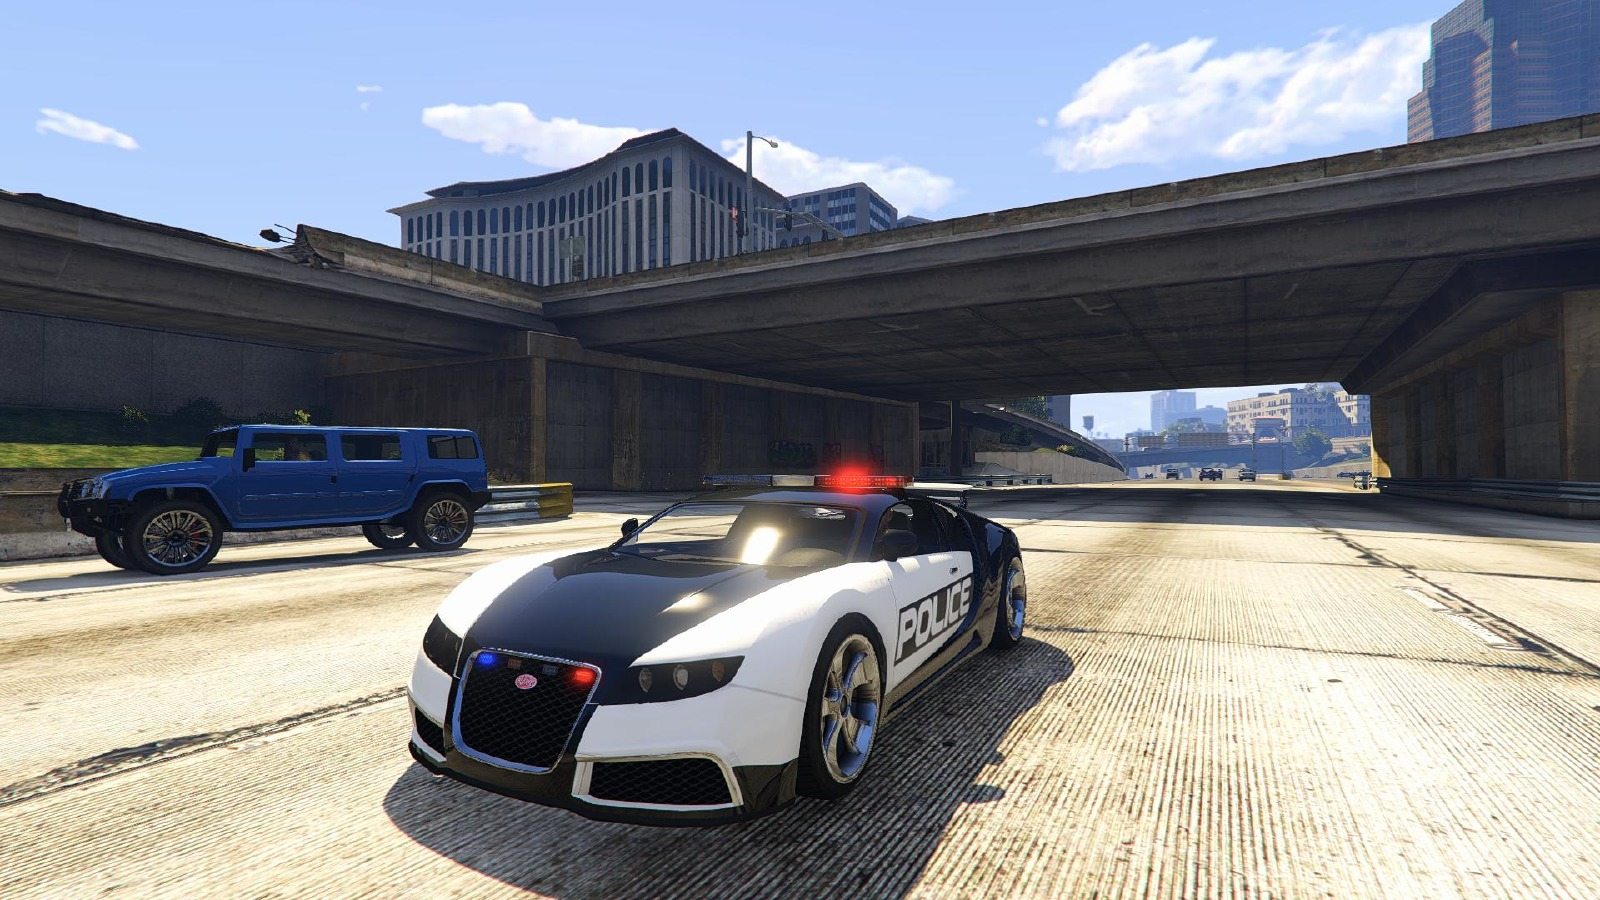 bugatti adder police lspd vehicules pour gta v sur gta modding. Black Bedroom Furniture Sets. Home Design Ideas